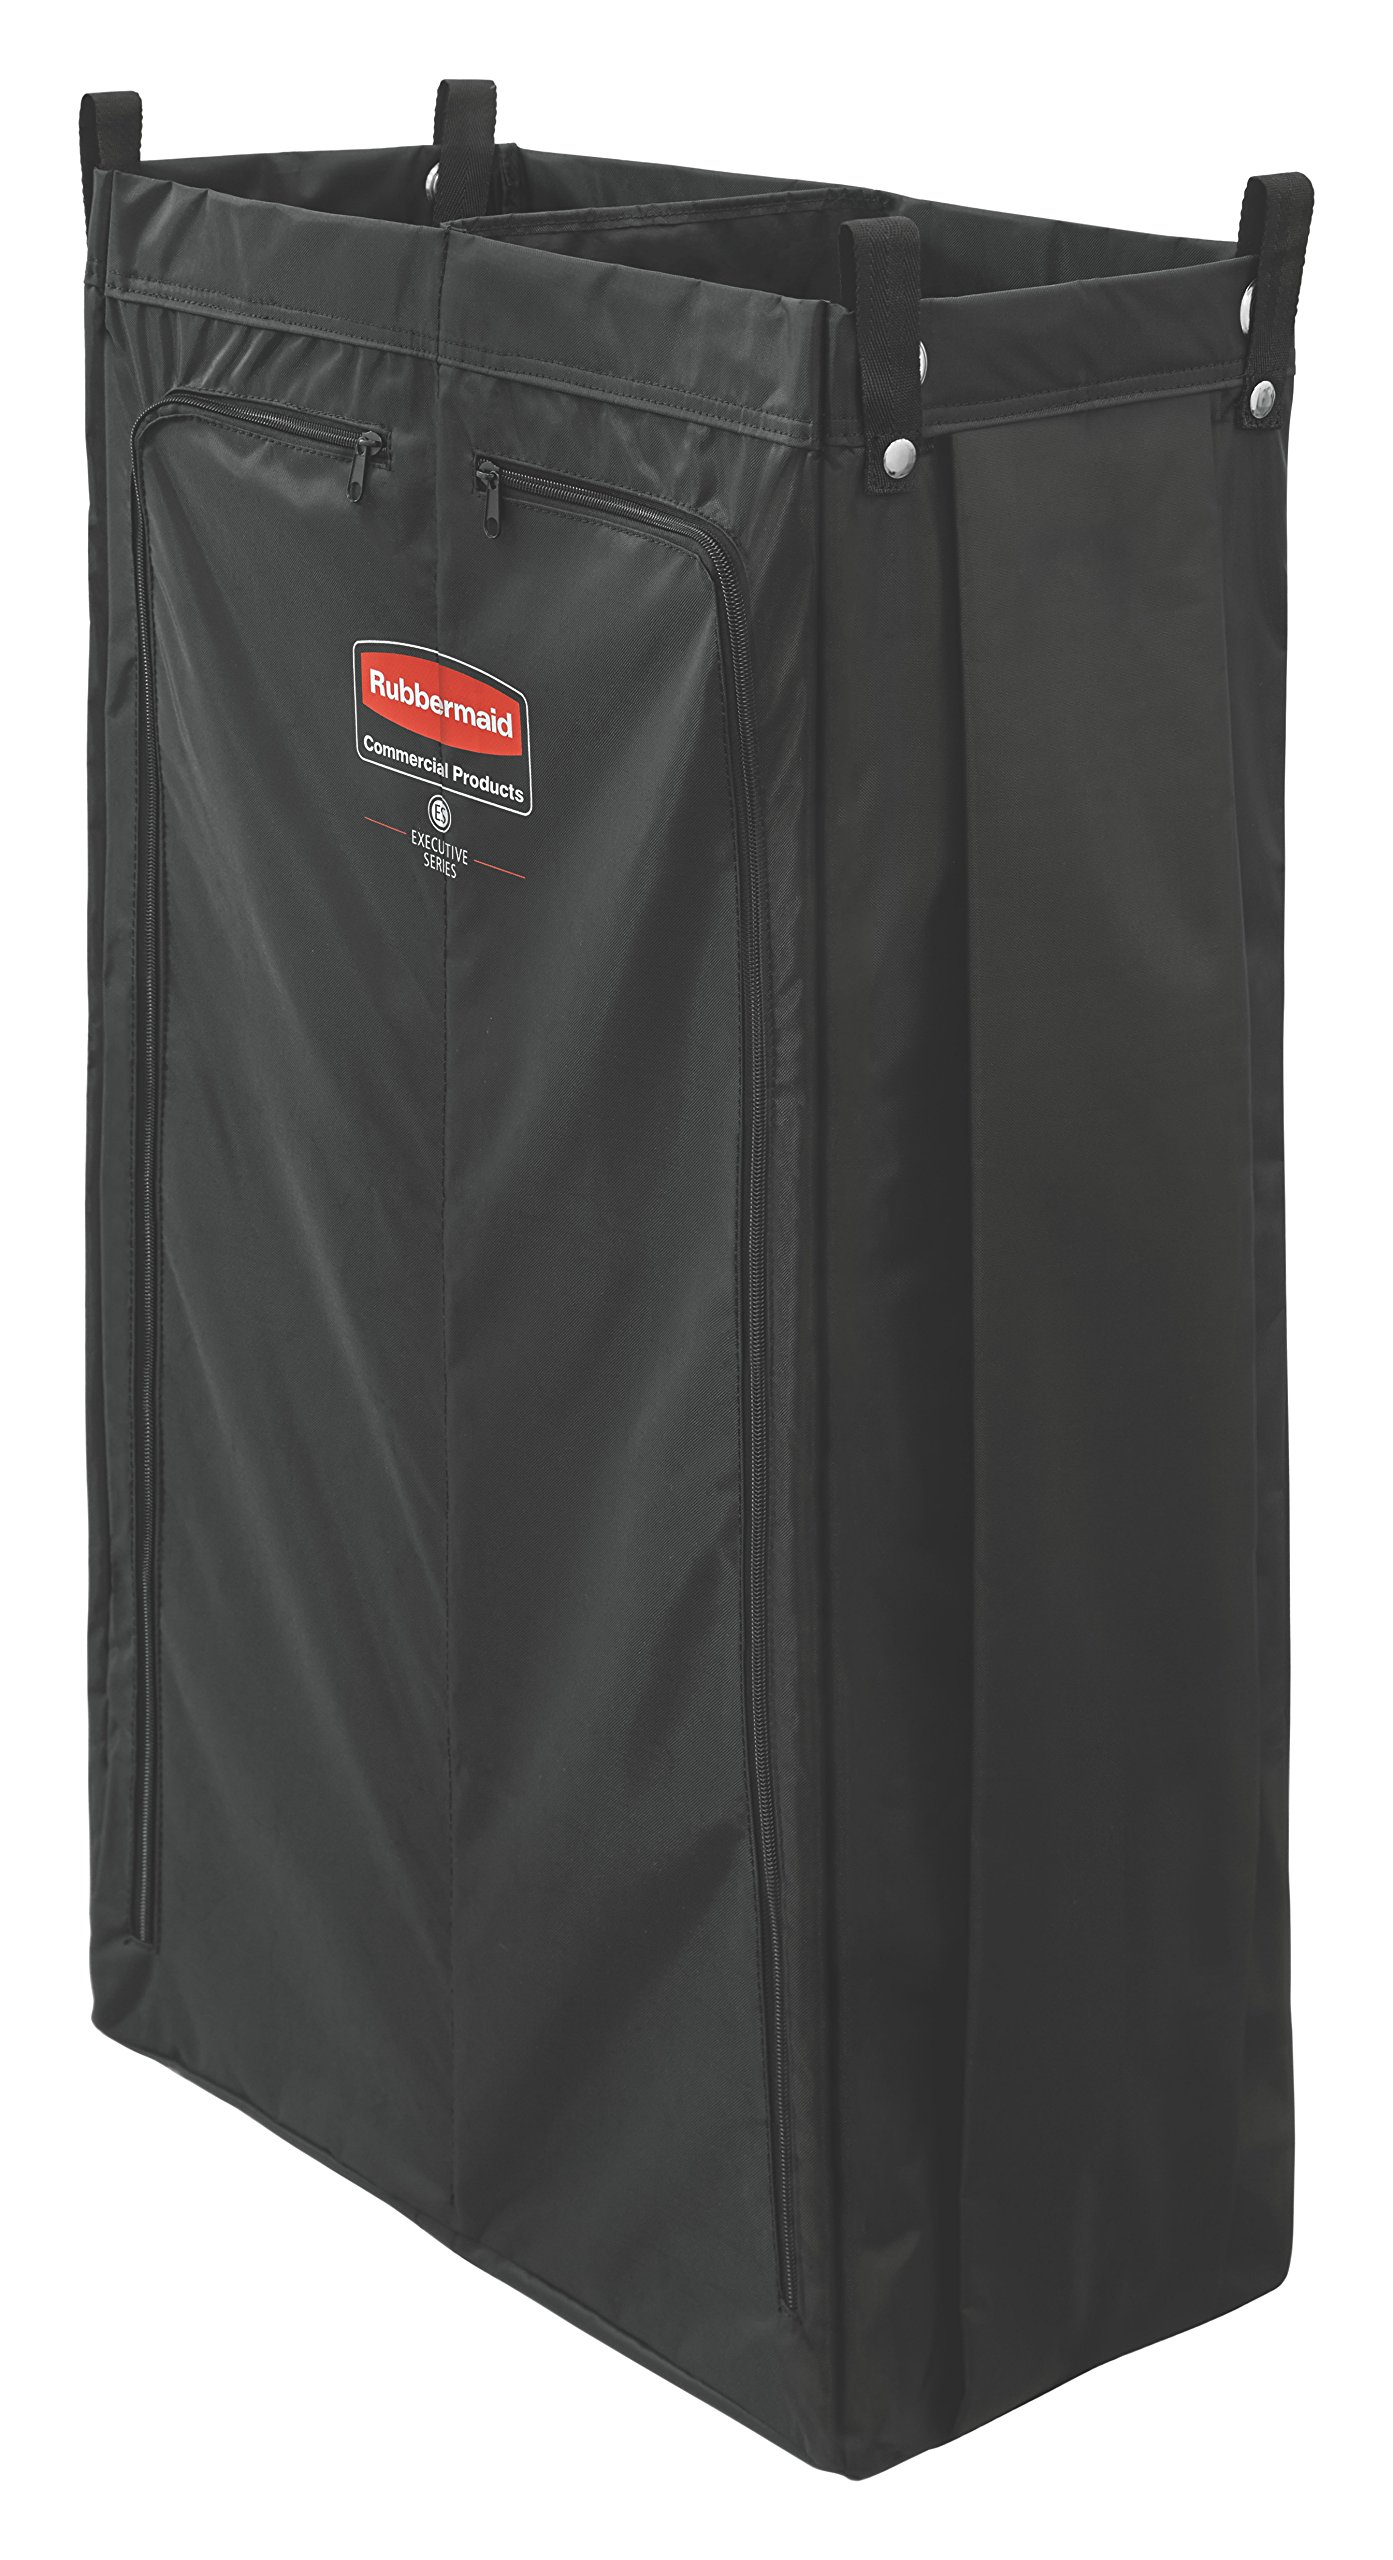 Rubbermaid Commercial Products 1966912 Heavy-Duty Divided Fabric Bag by Rubbermaid Commercial Products